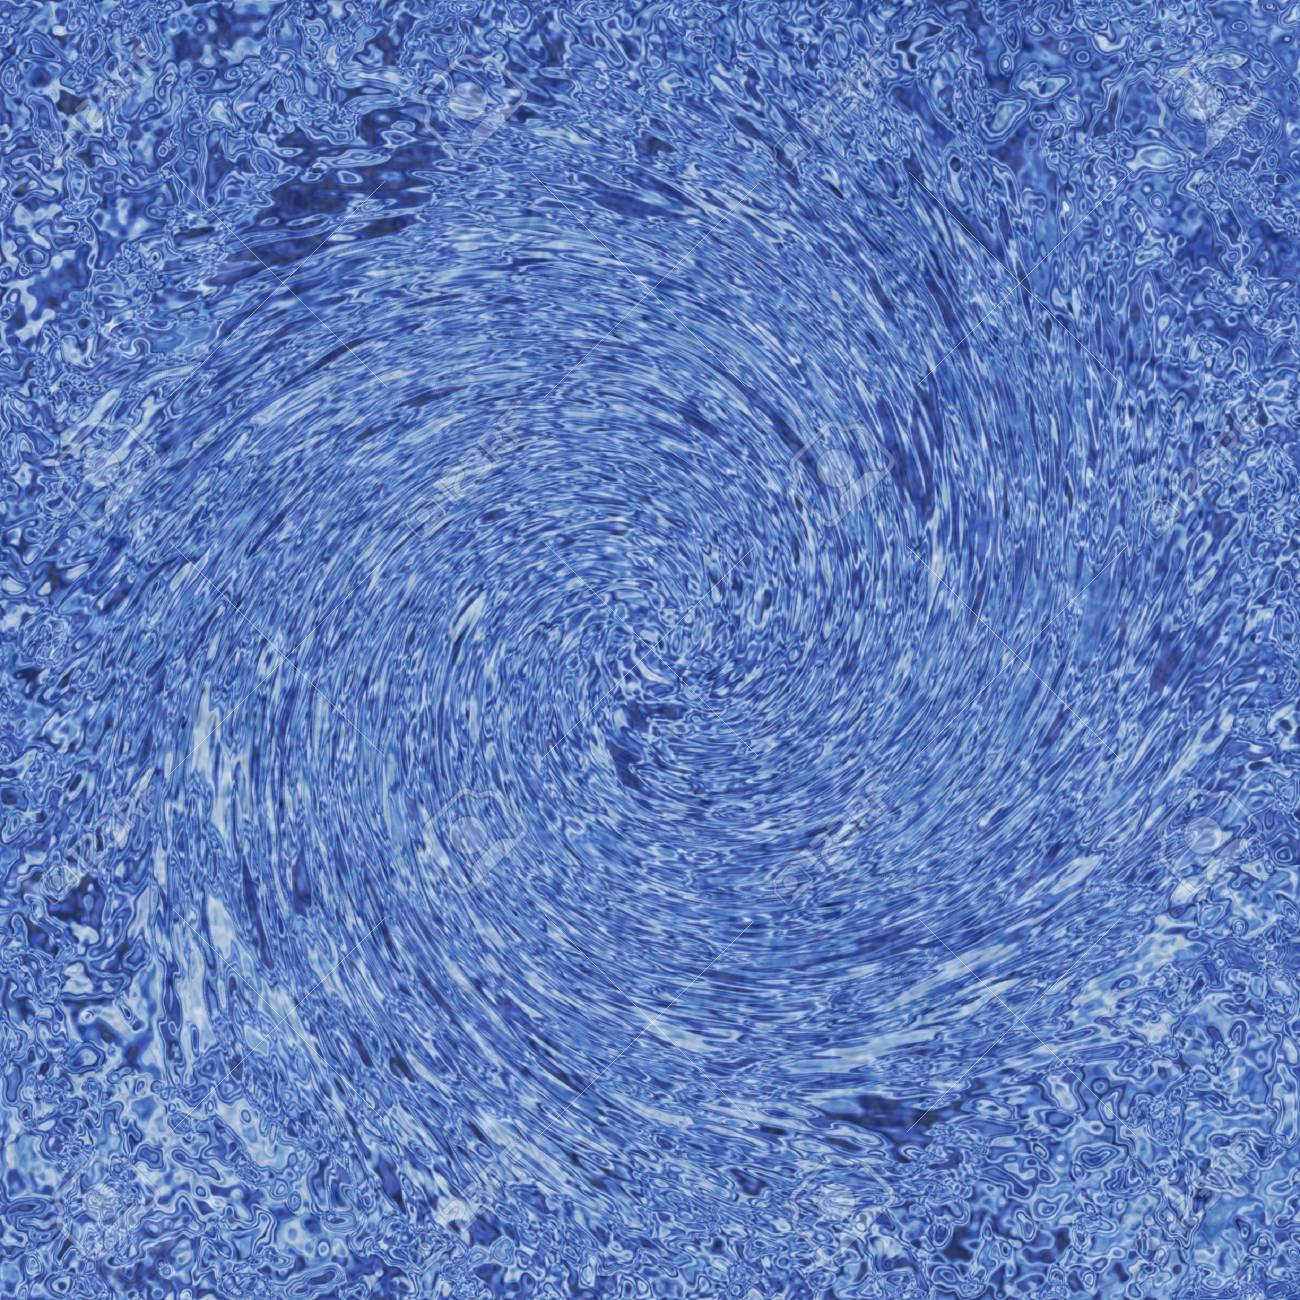 abstract blue whirlpool background. tripple on the water Stock Photo - 11552679